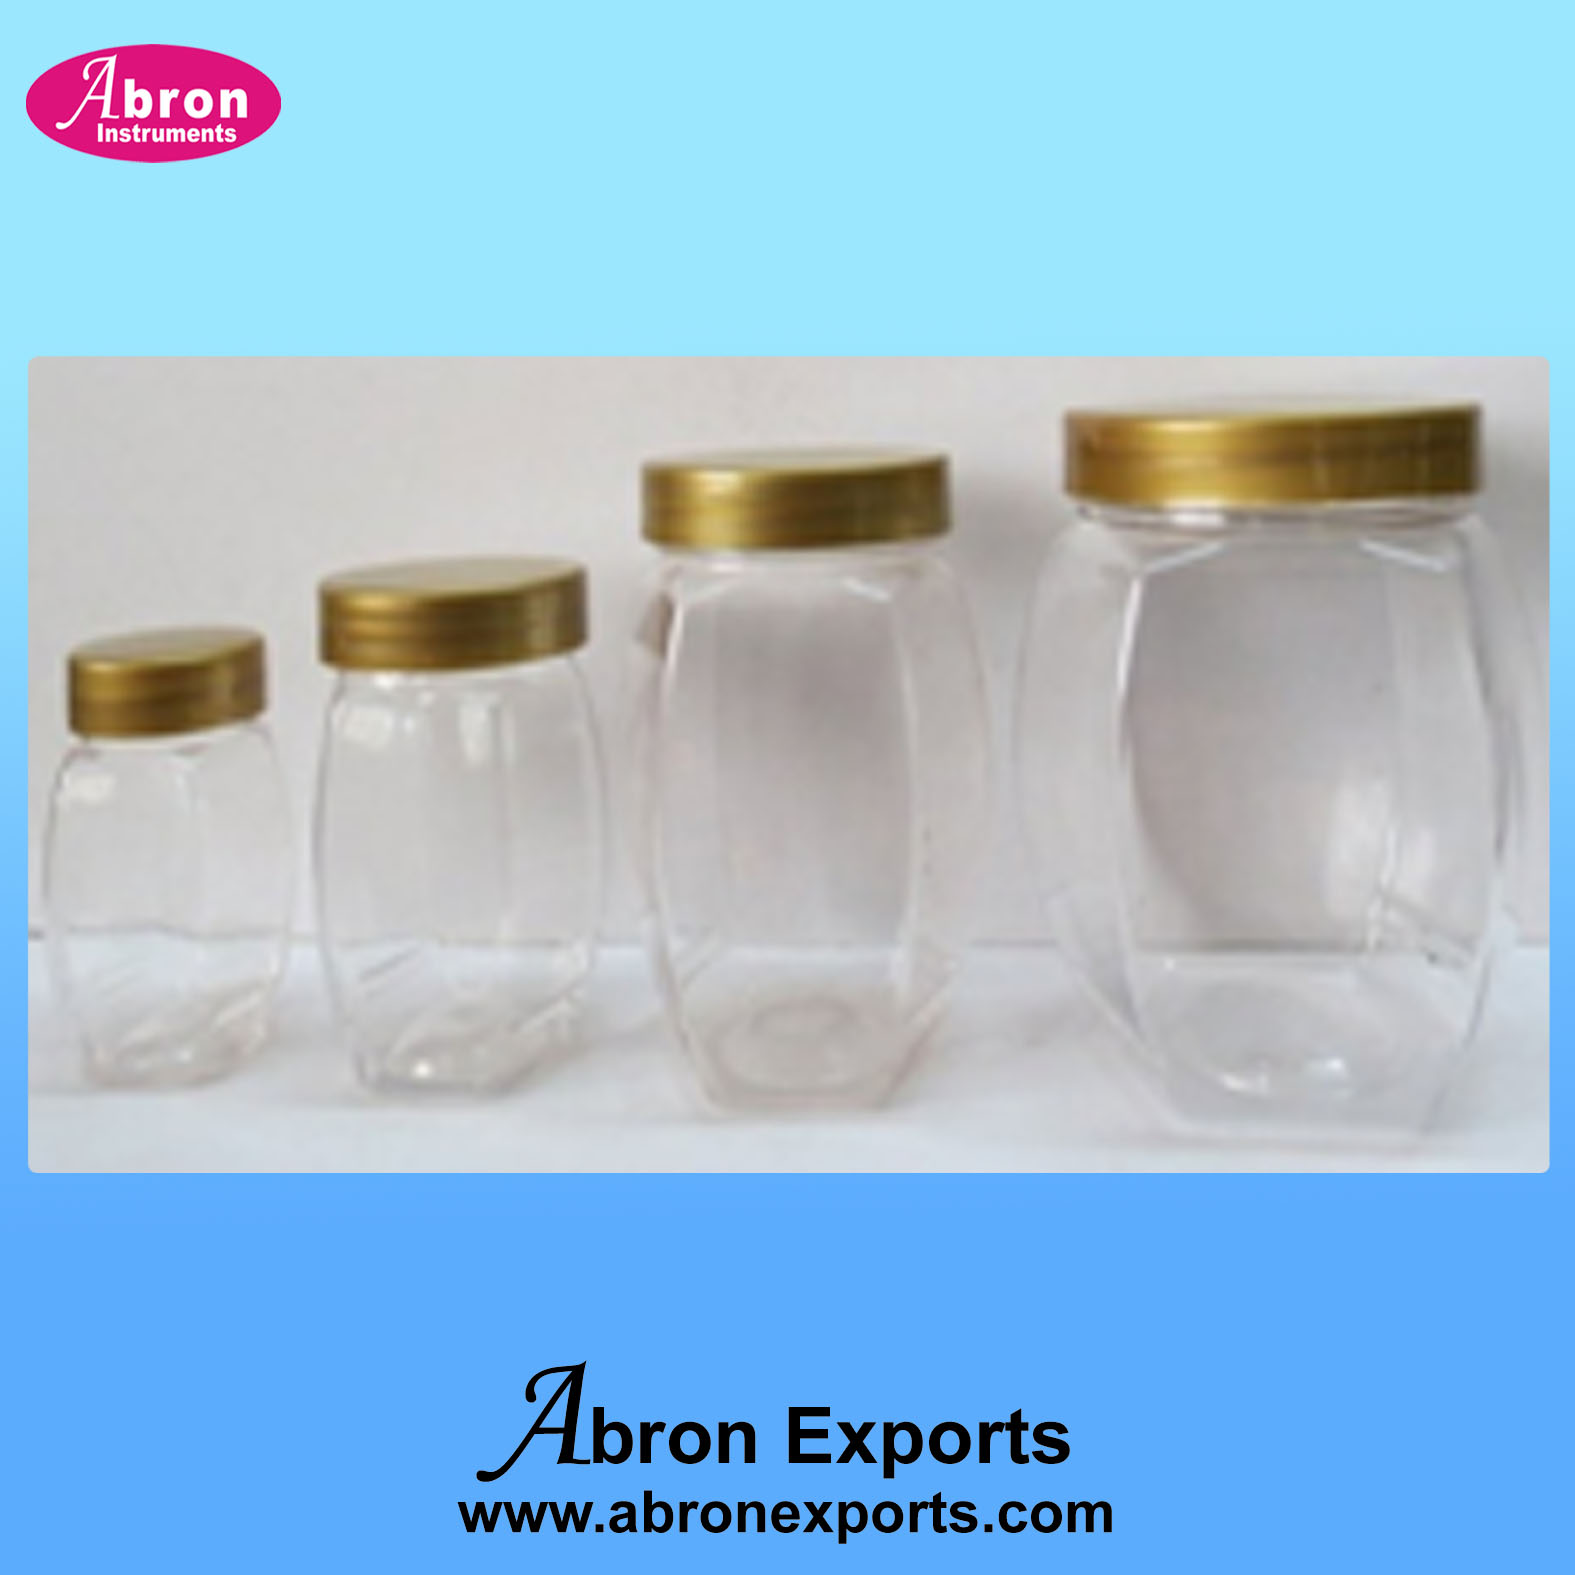 1kg Honey Packing Wide Mouth jar Abron AT-9516-200-500